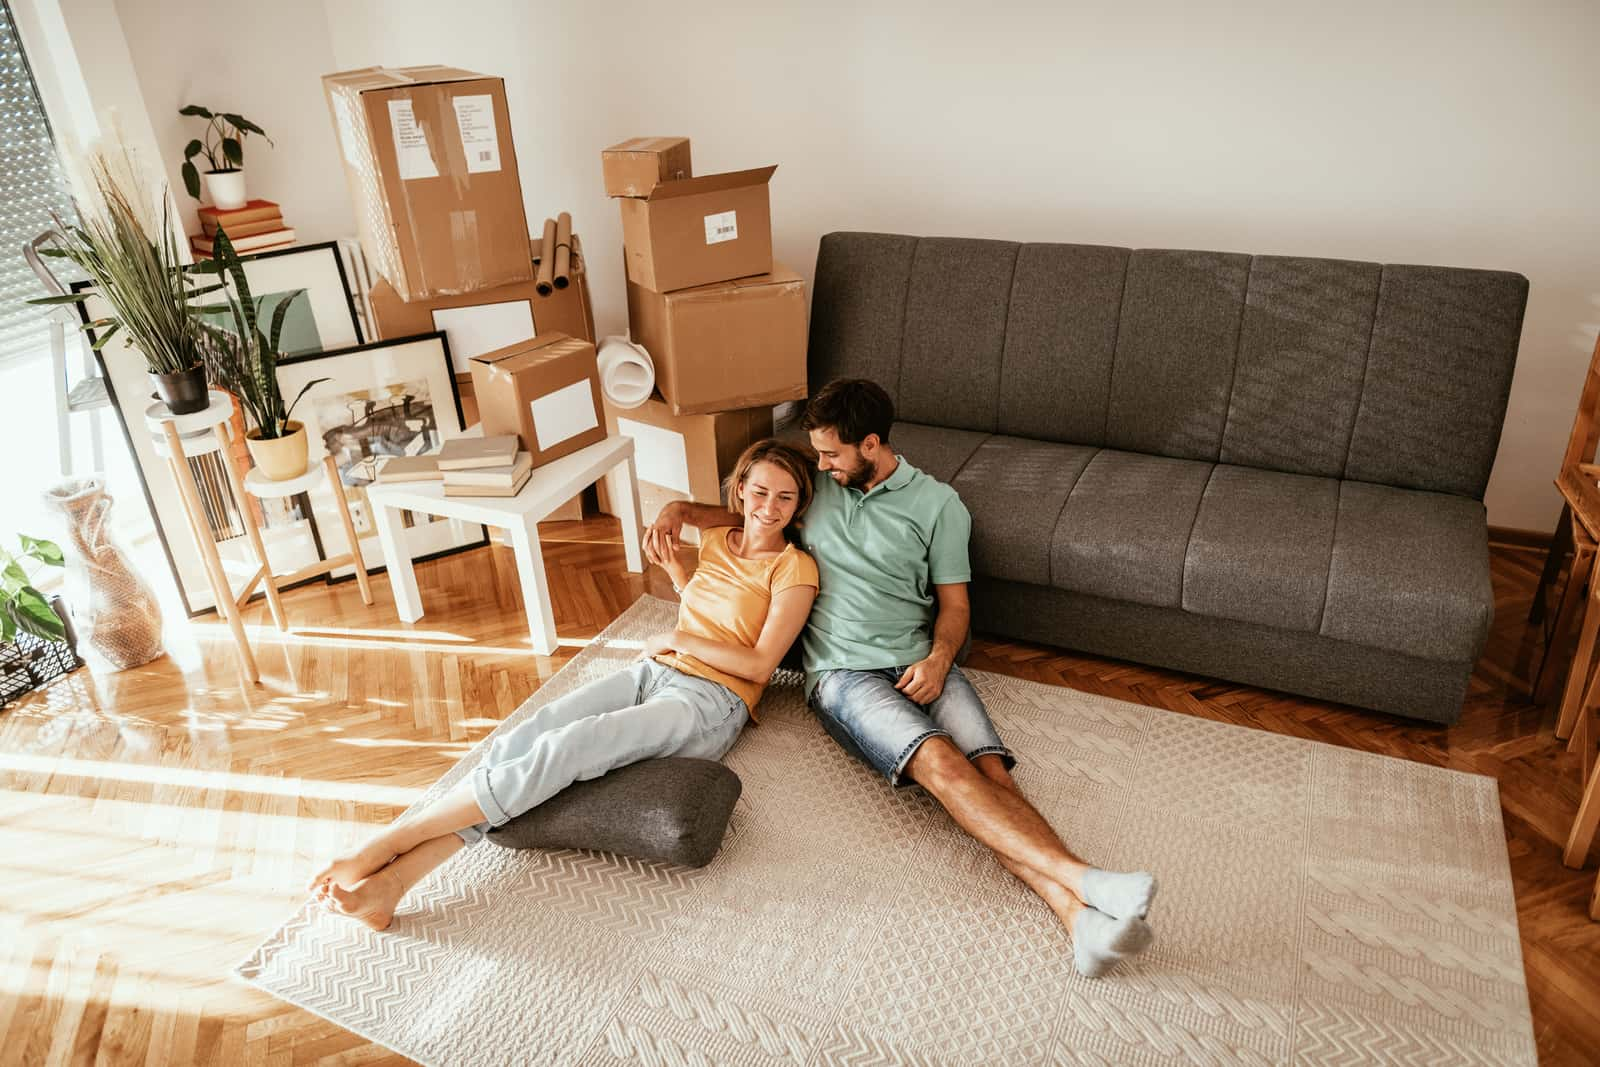 Couple moving in new apartment, lying on carpet and sharing love and happiness after moving in.